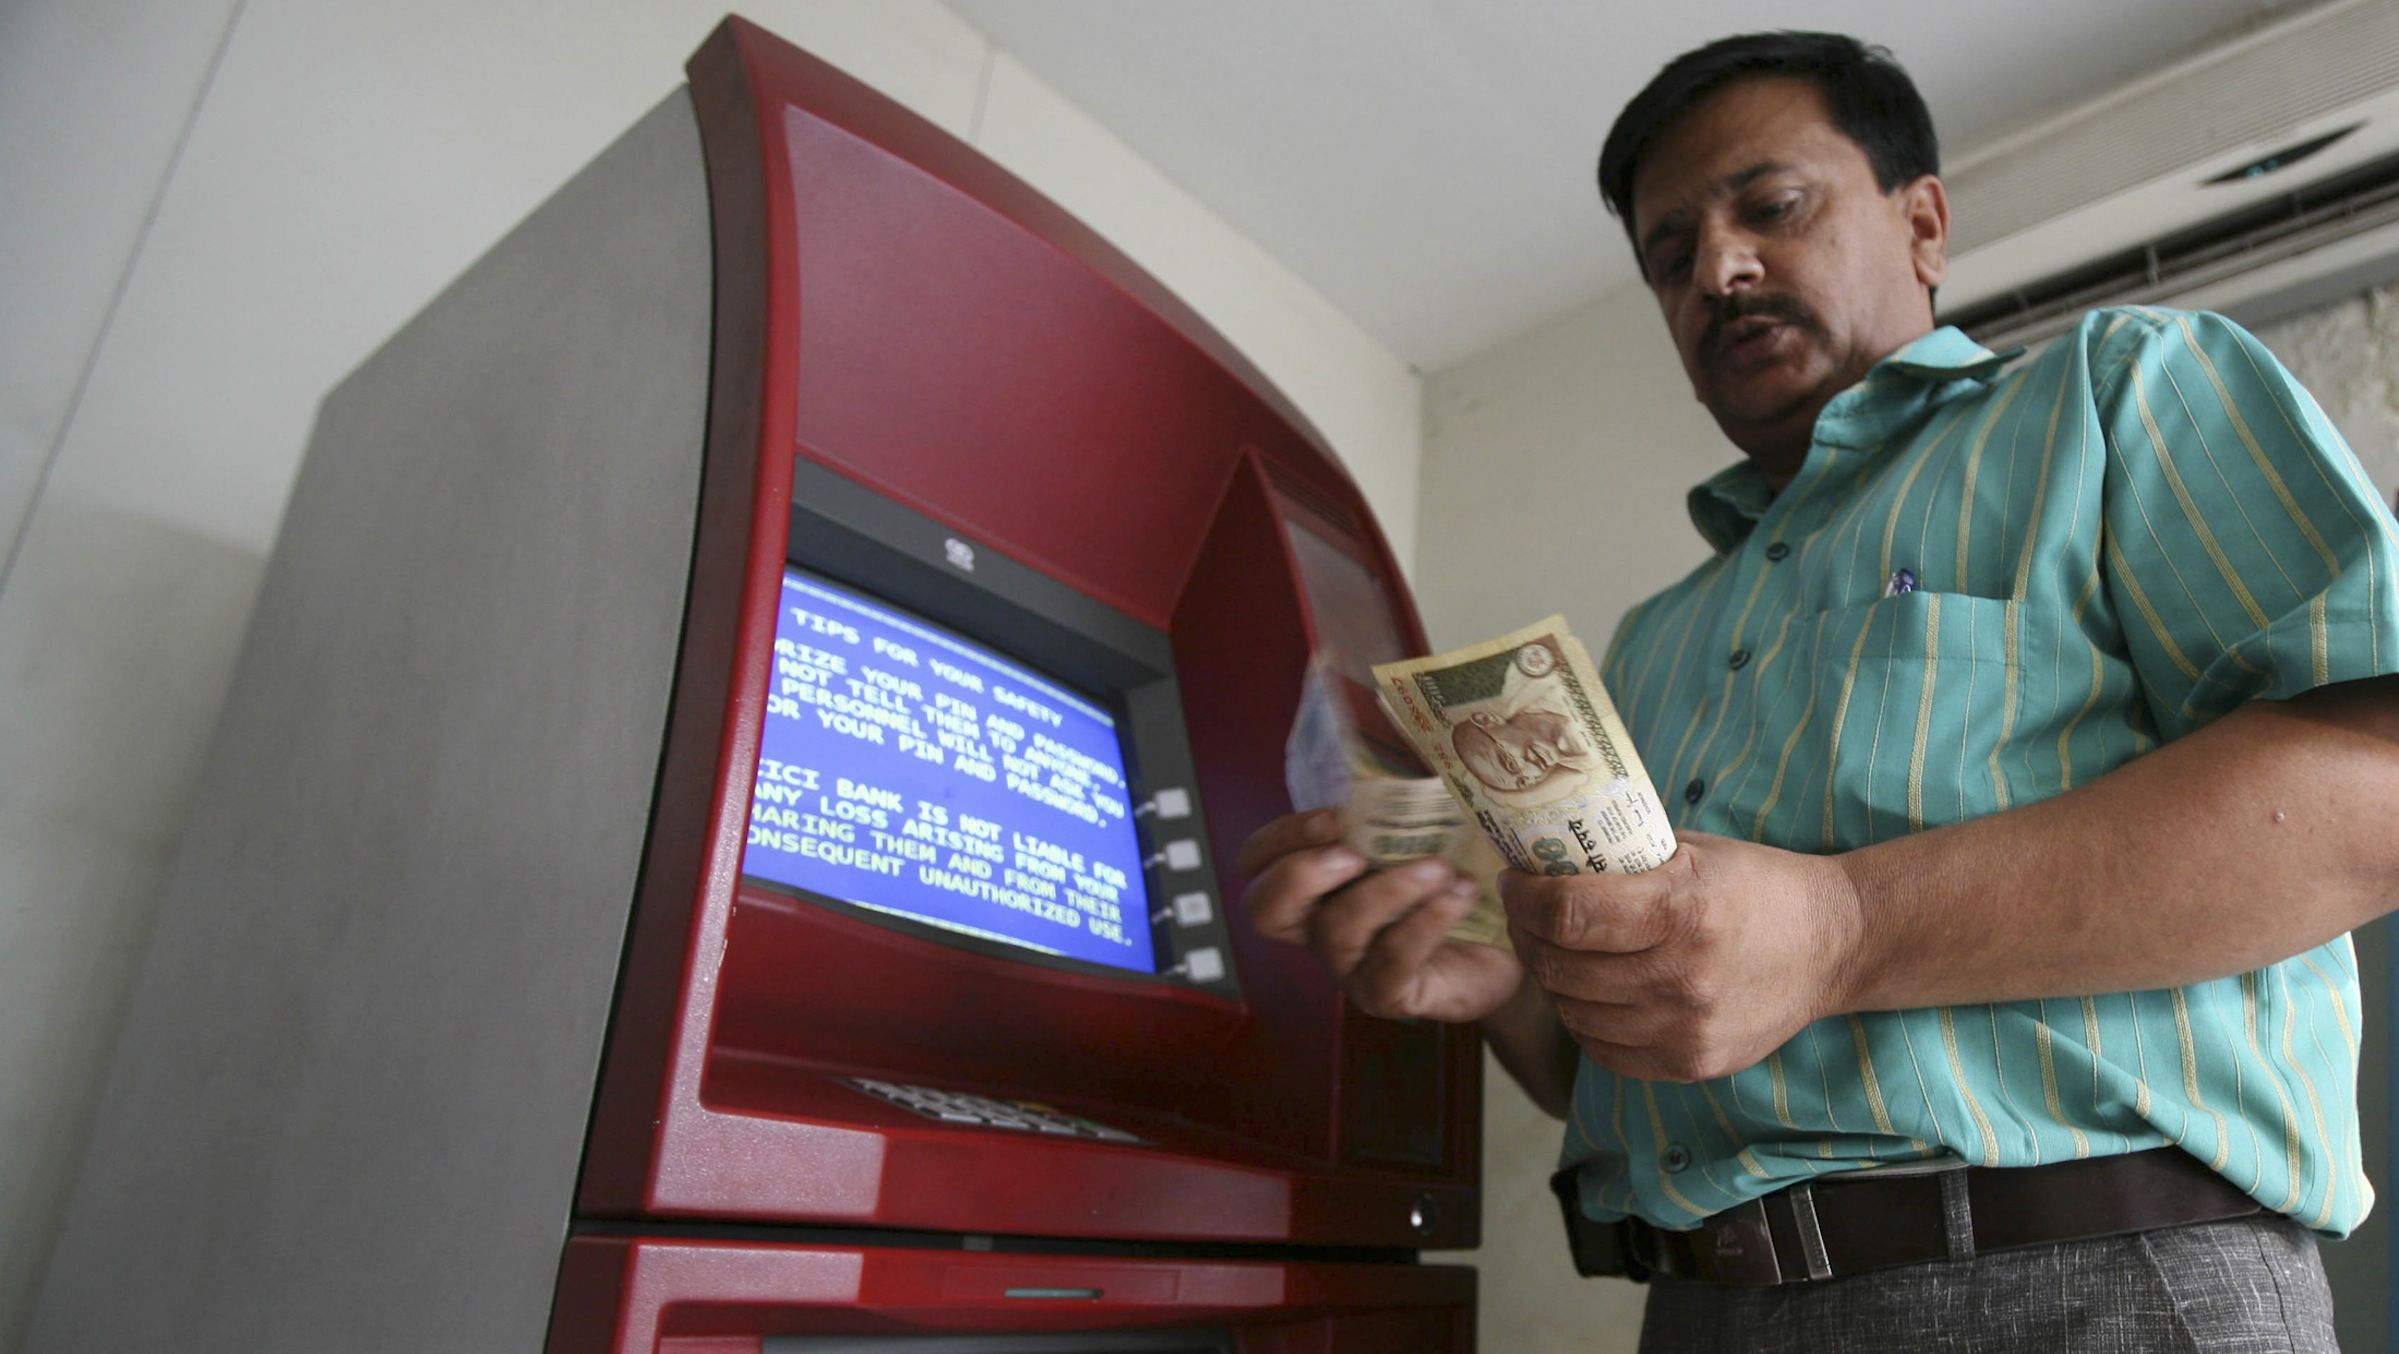 A man counts money after withdrawing it from an ATM in Jammu October 14, 2008. Indian shares held gains of 1.5 percent on Tuesday, led by Reliance Industries, but investors were circumspect and watchful after a sharp rebound this week on concerted action across the world to rescue the financial sector. REUTERS/Amit Gupta (INDIAN-ADMINISTERED KASHMIR) - RTX9J5C